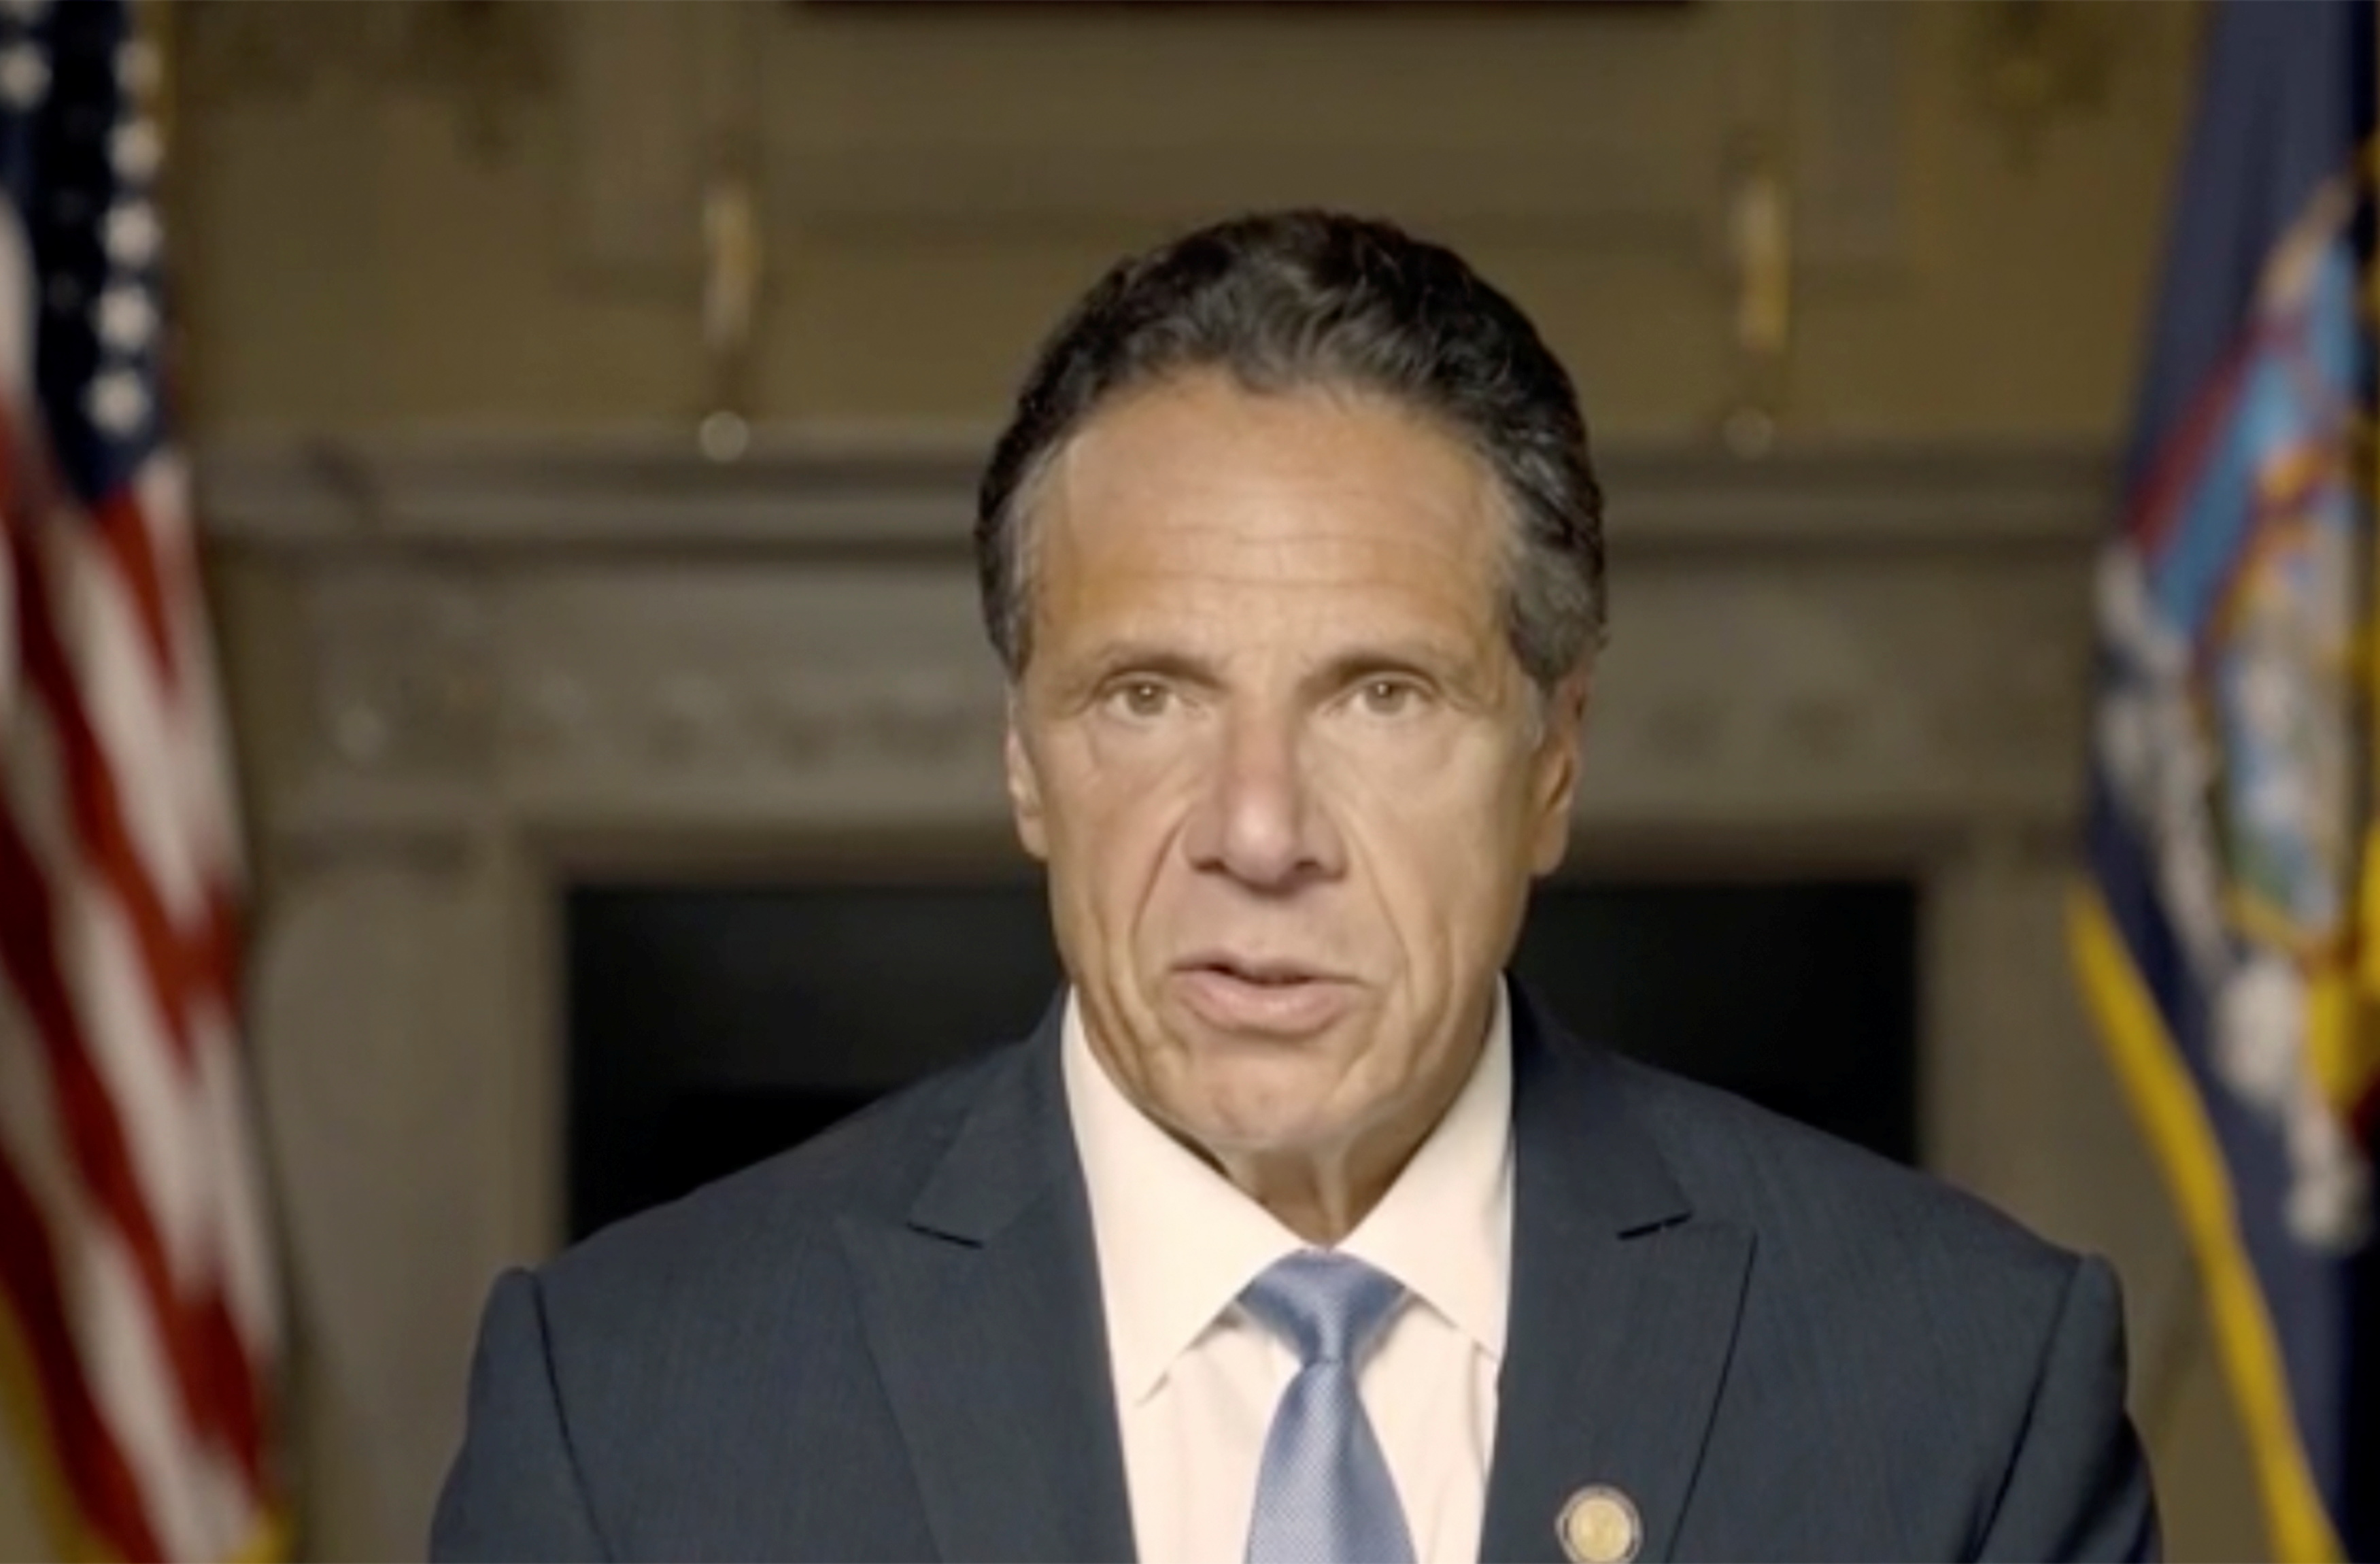 New York Governor Andrew Cuomo makes a statement in this screen grab taken from a pre-recorded video released by Office of the NY Governor, in New York, U.S., August 3, 2021.  Office of Governor Andrew M. Cuomo/Handout via REUTERS